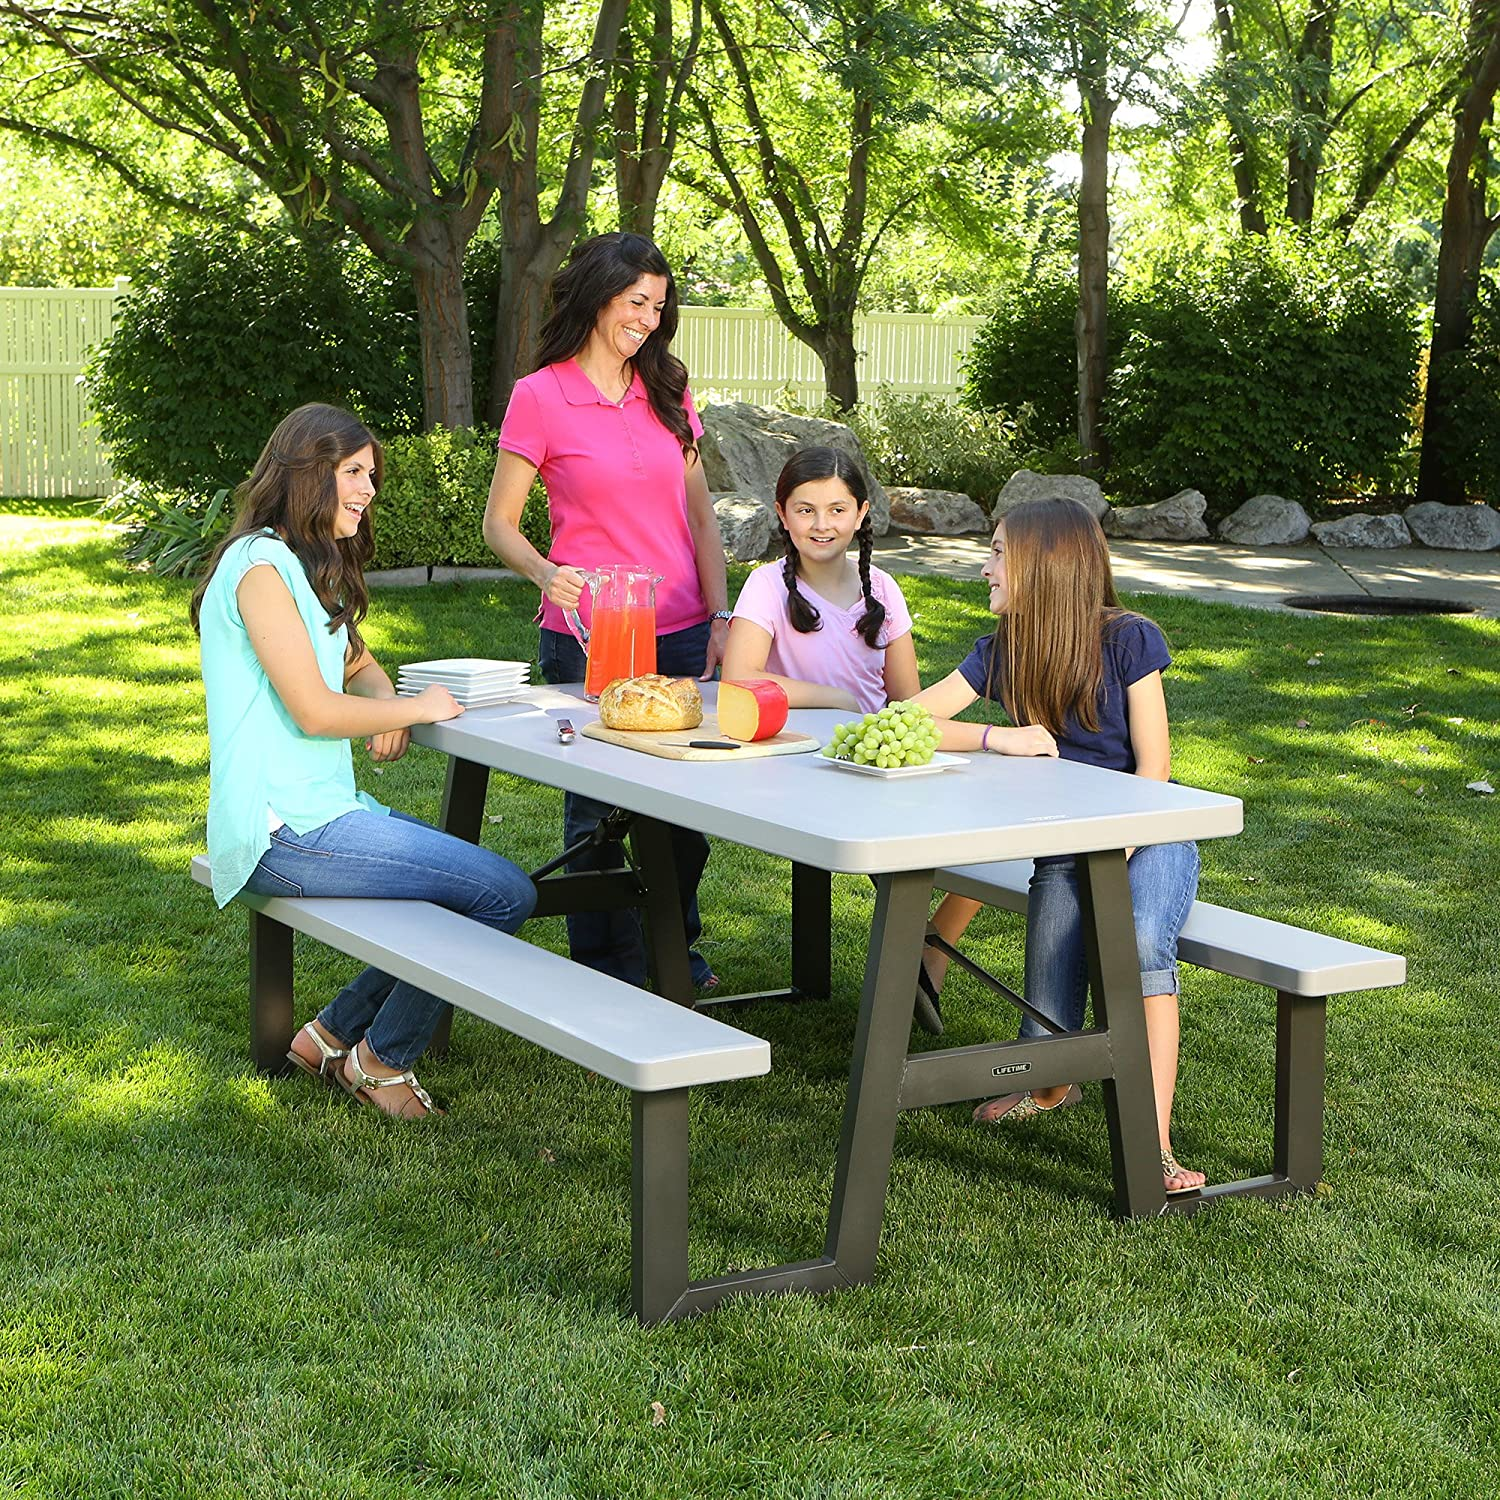 Amazon.com: Lifetime, mesa para picnic plegable, 6 pies ...